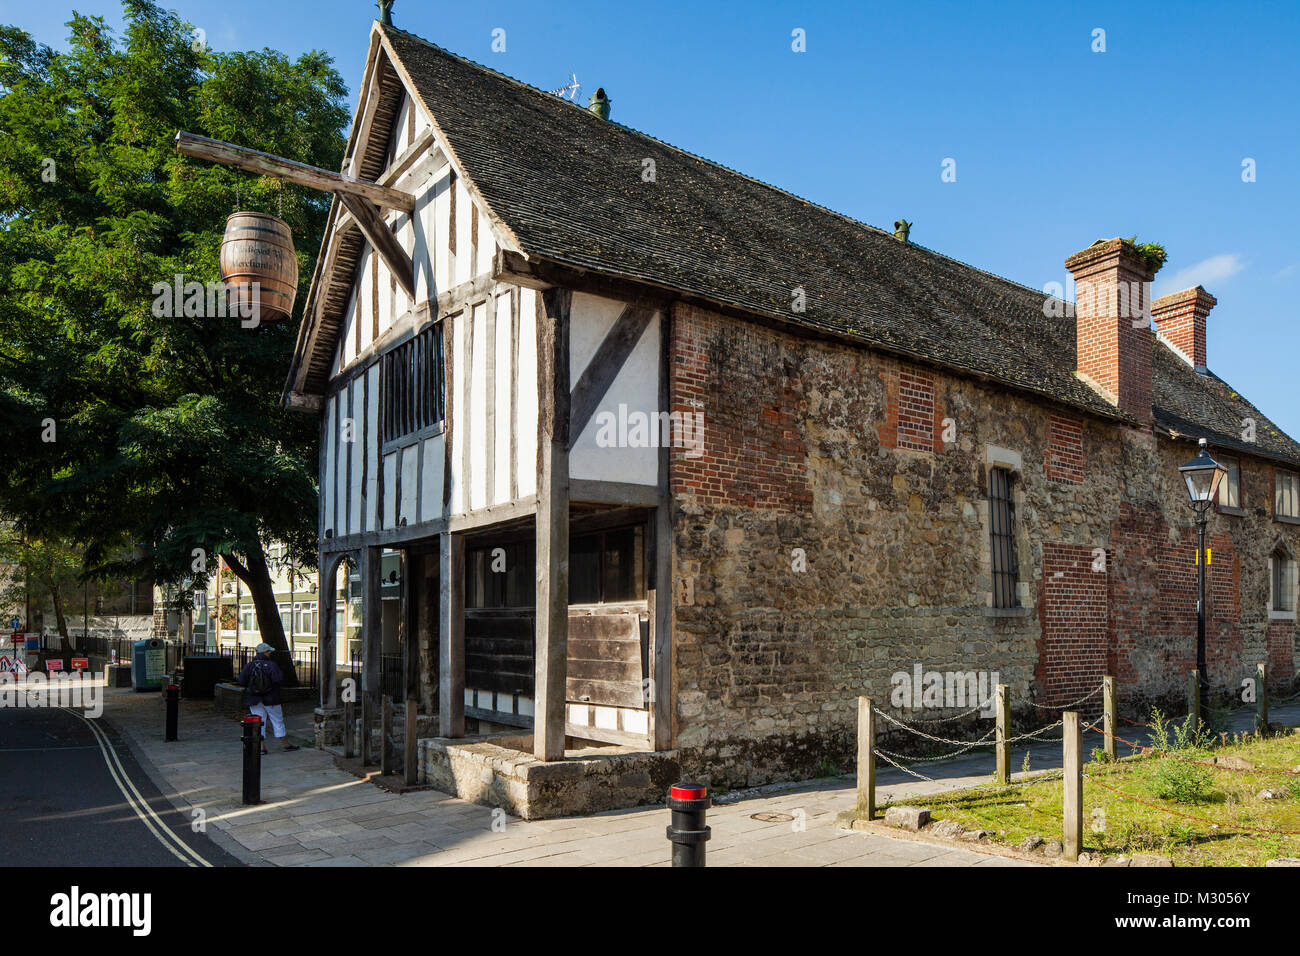 Historic house in Southampton, Hampshire, England. - Stock Image